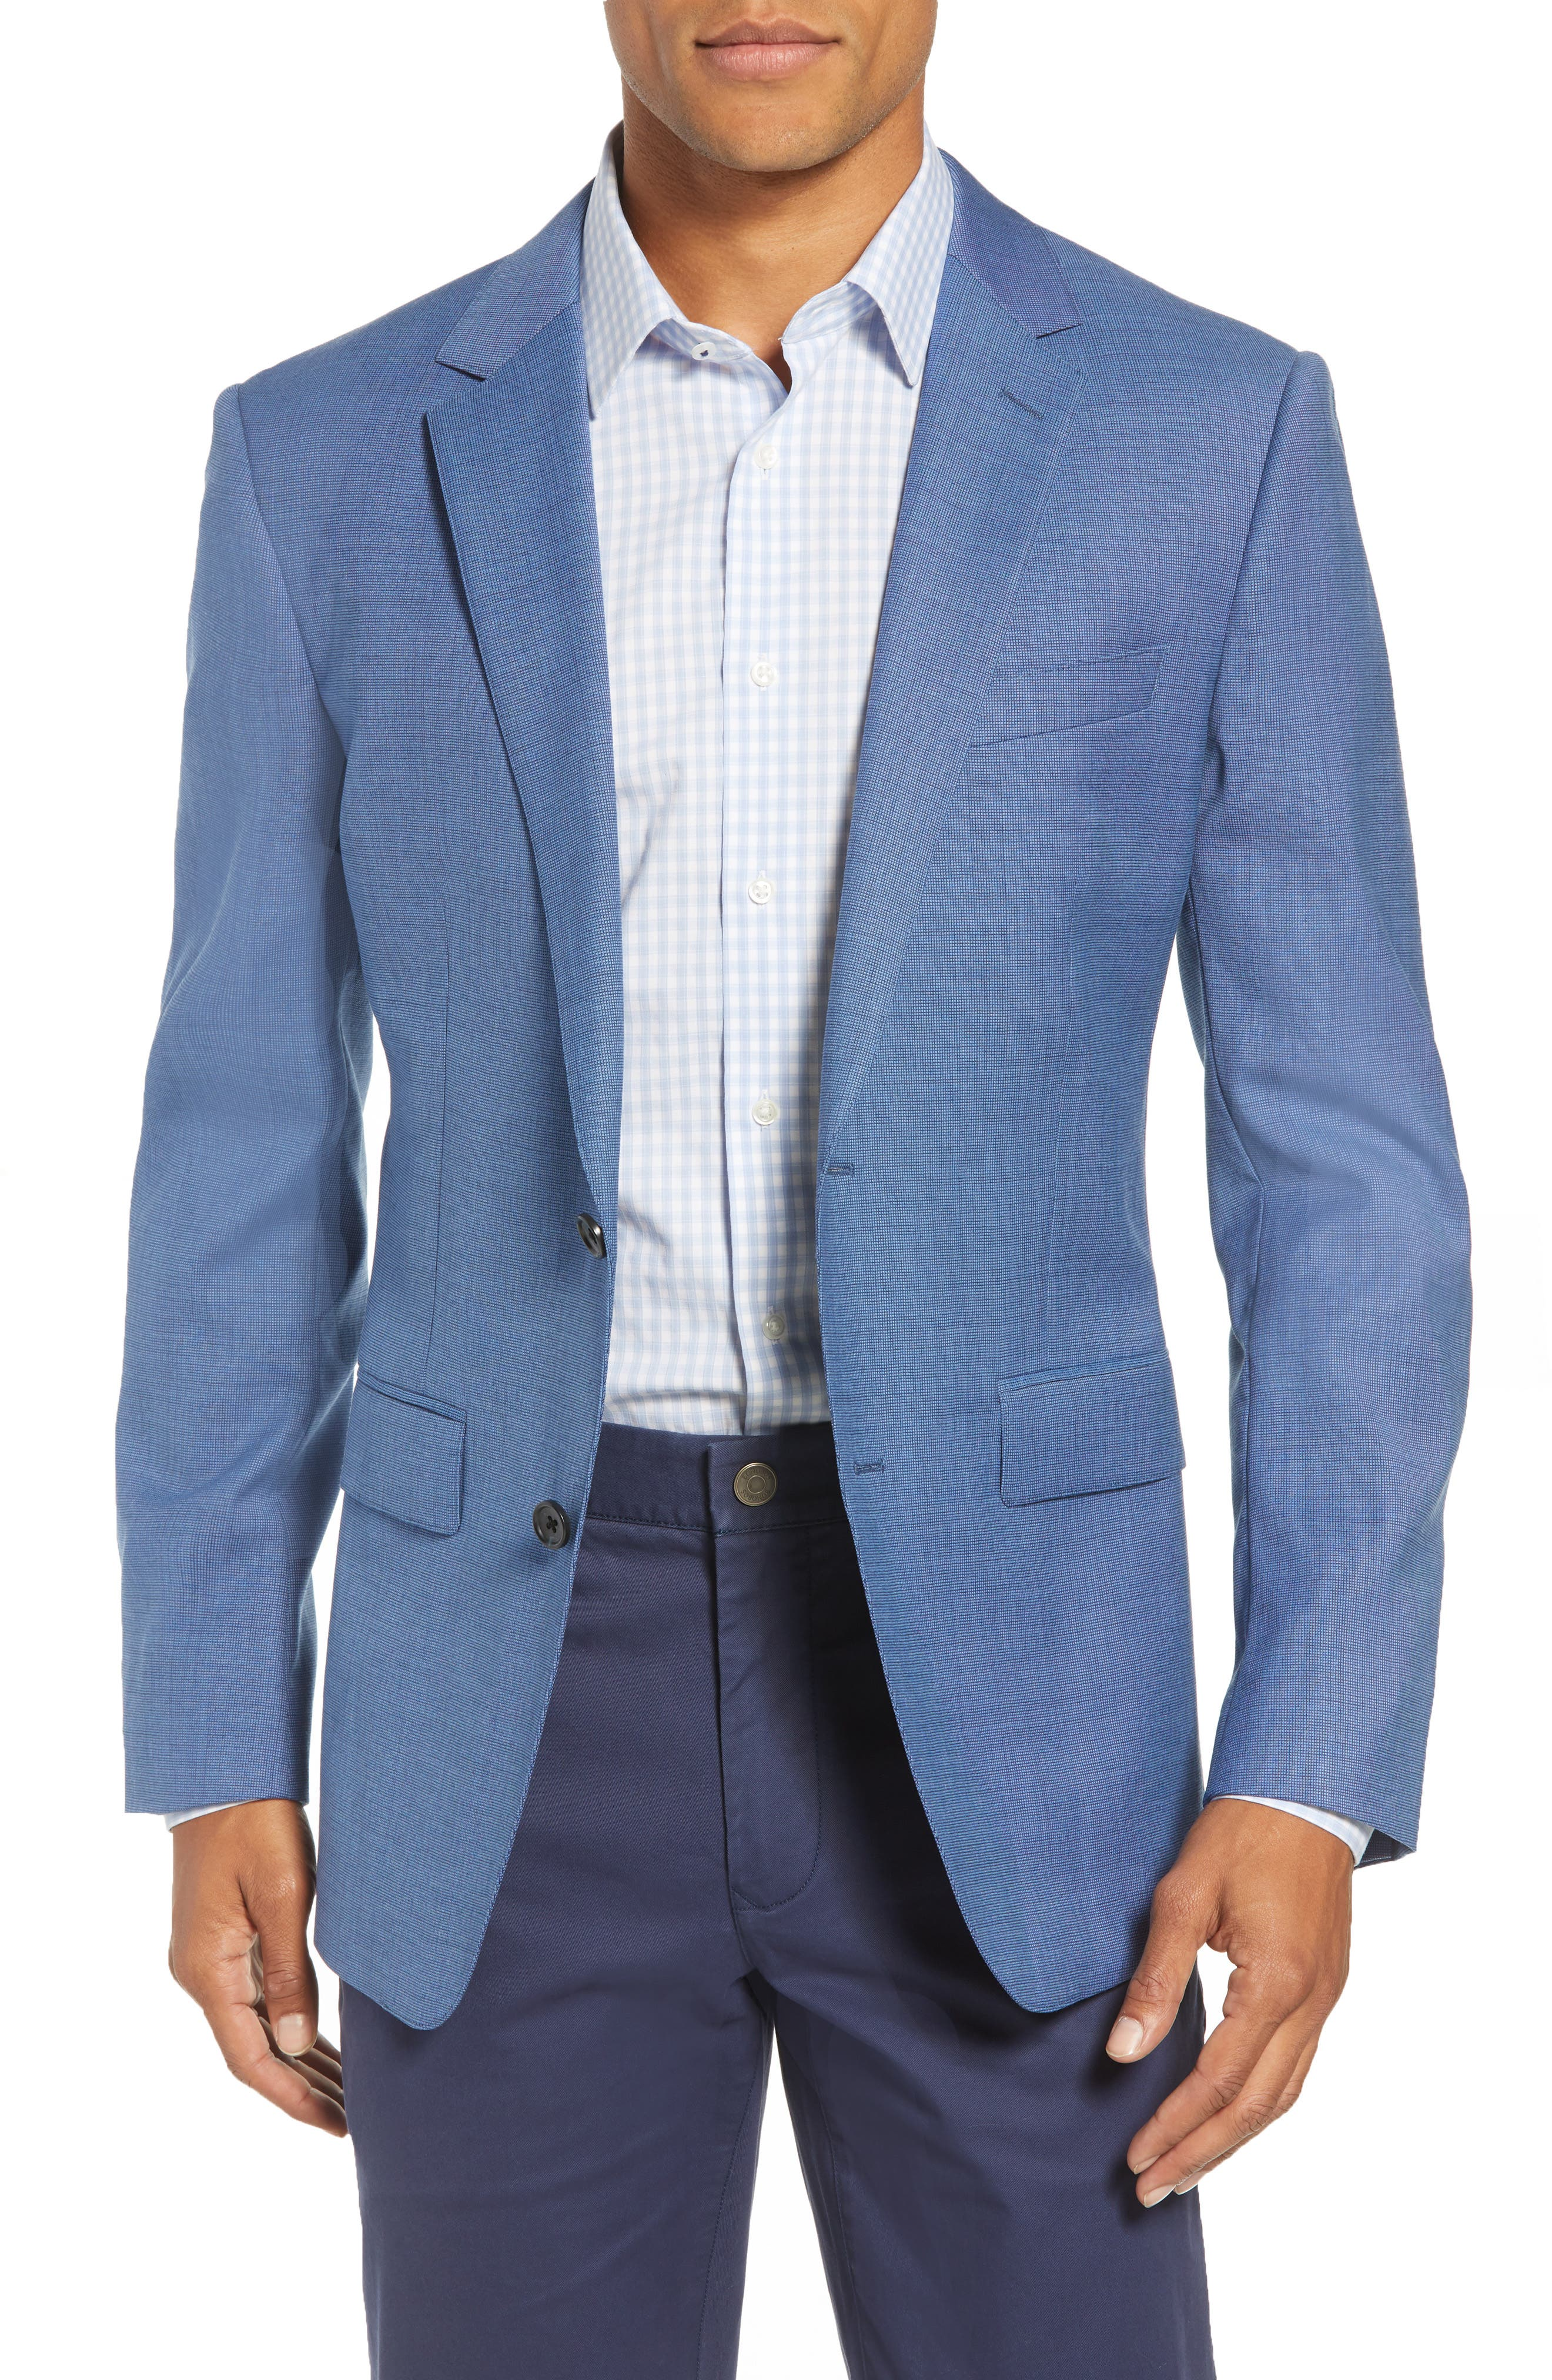 Jetsetter Trim Fit Stretch Solid Wool Suit Jacket,                         Main,                         color, BRIGHTER BLUE